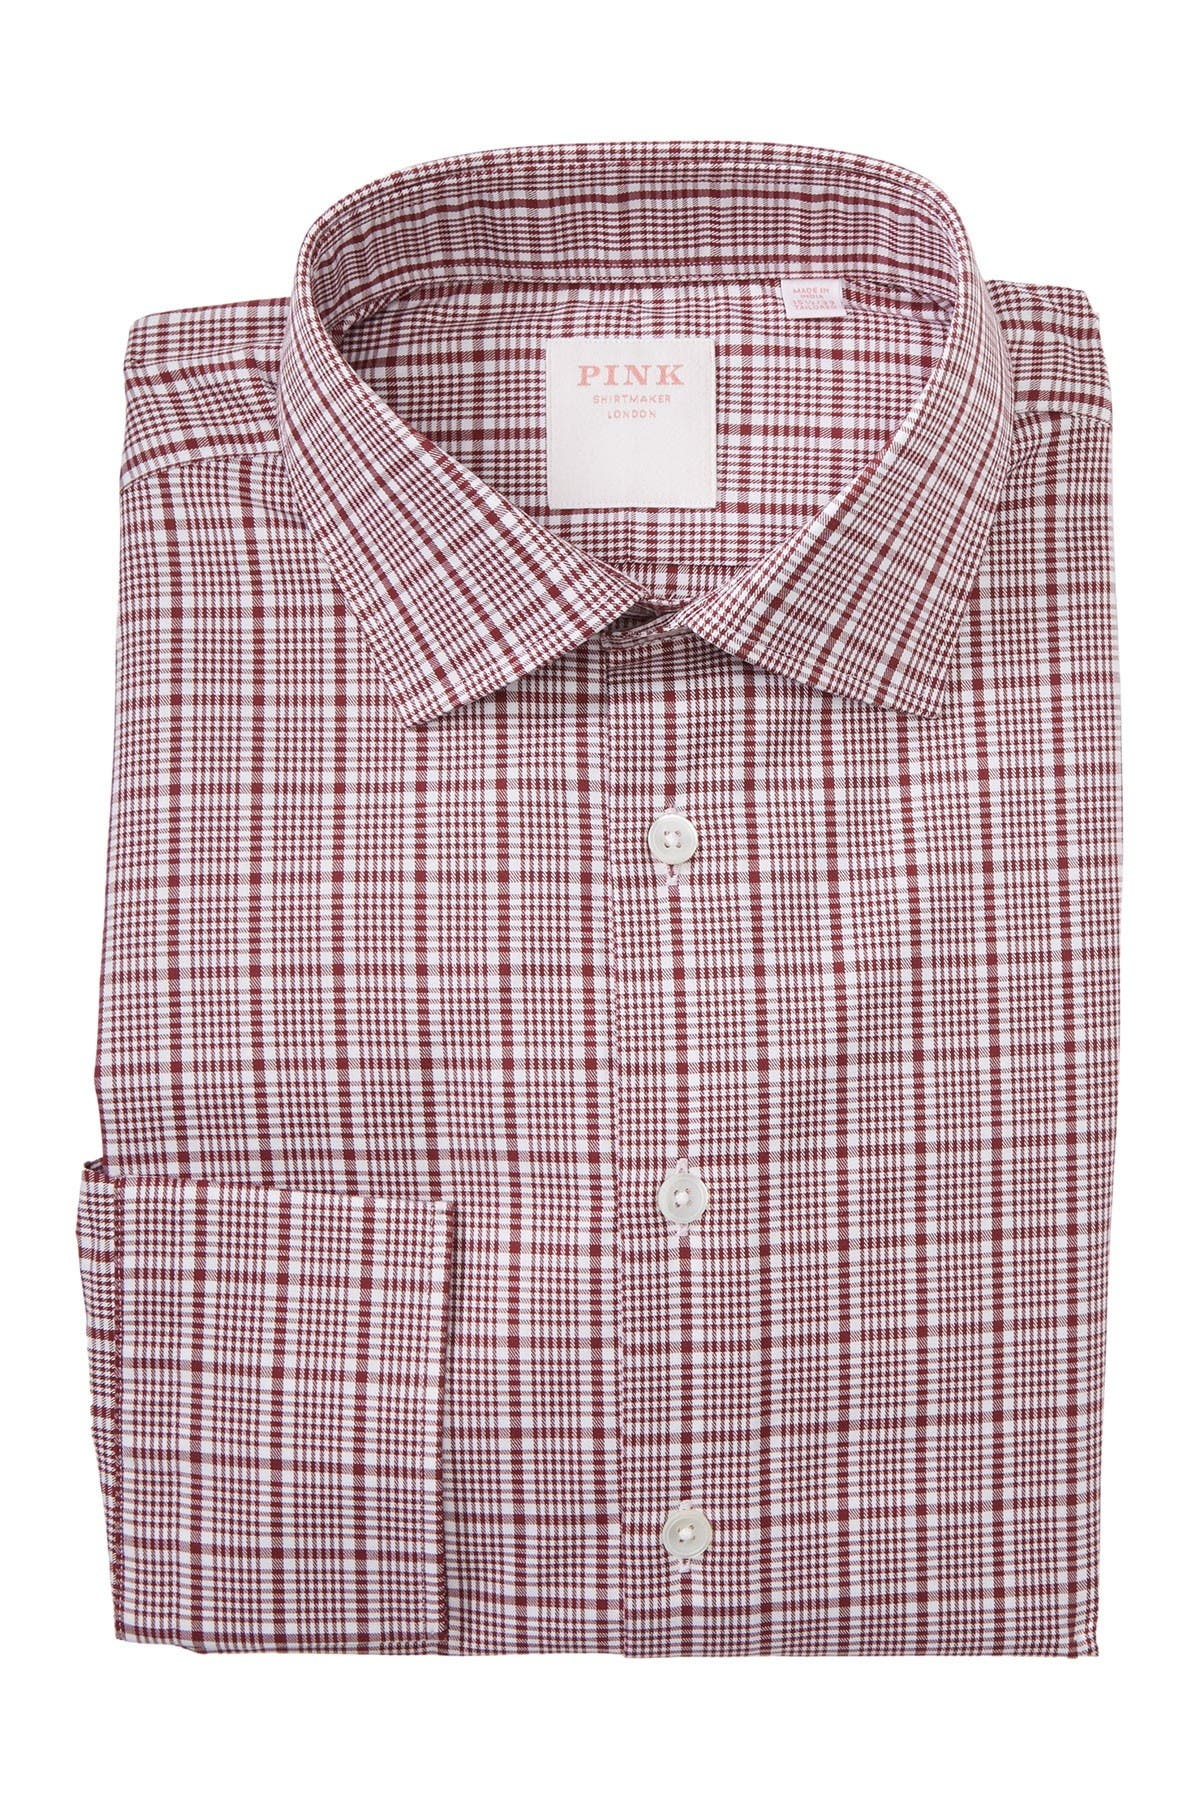 Image of THOMAS PINK Royal Check Print Dress Shirt